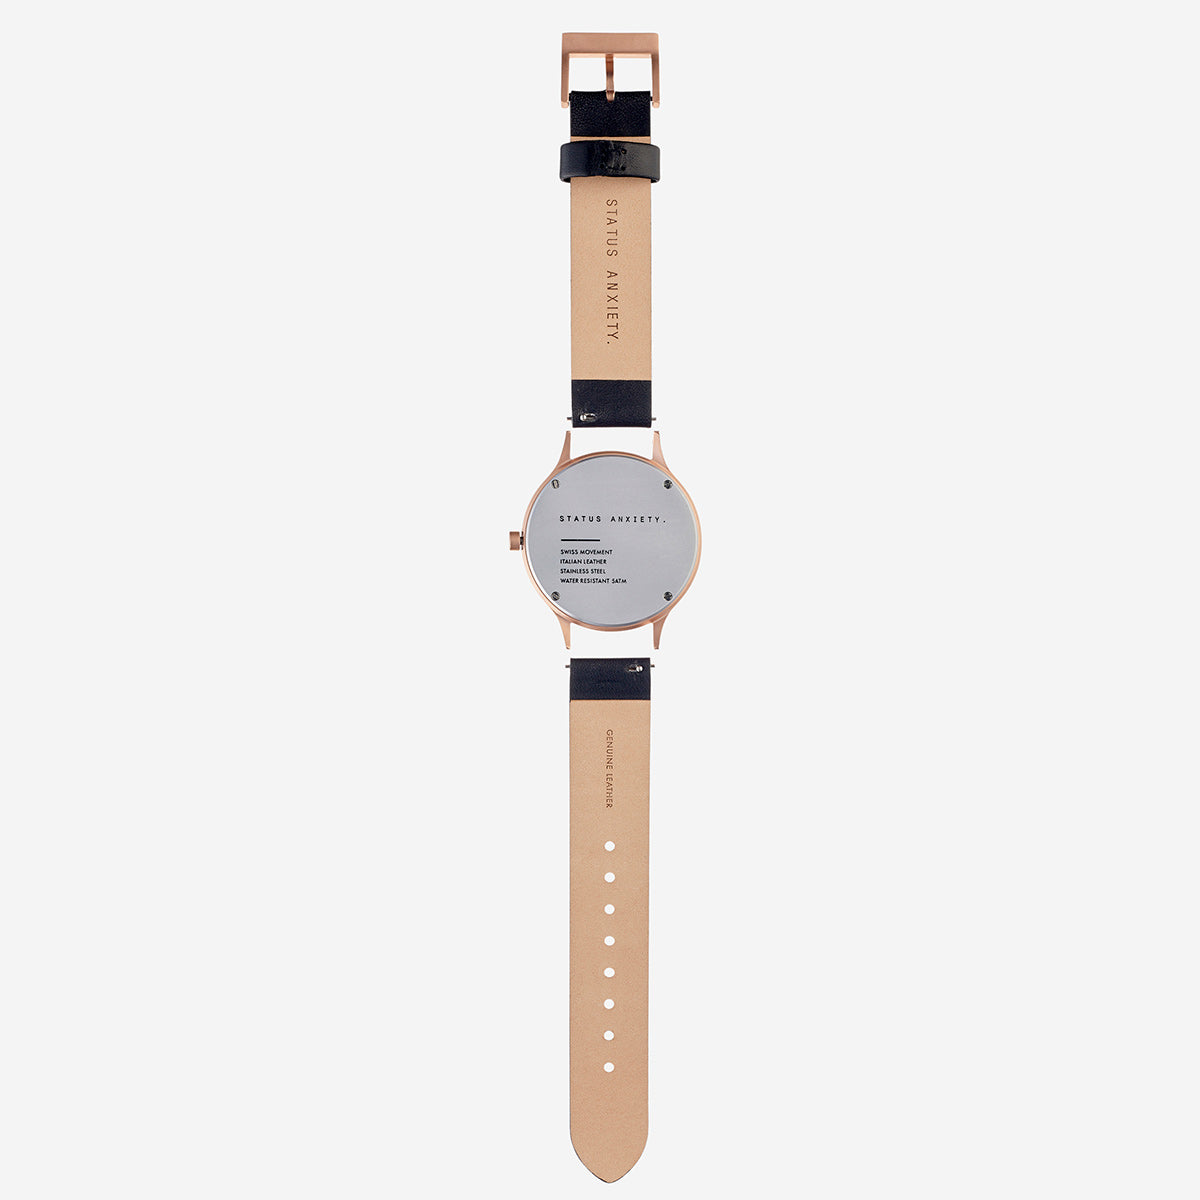 Status Anxiety Inertia Leather Unisex Watch - Copper/White Face/Black Strap